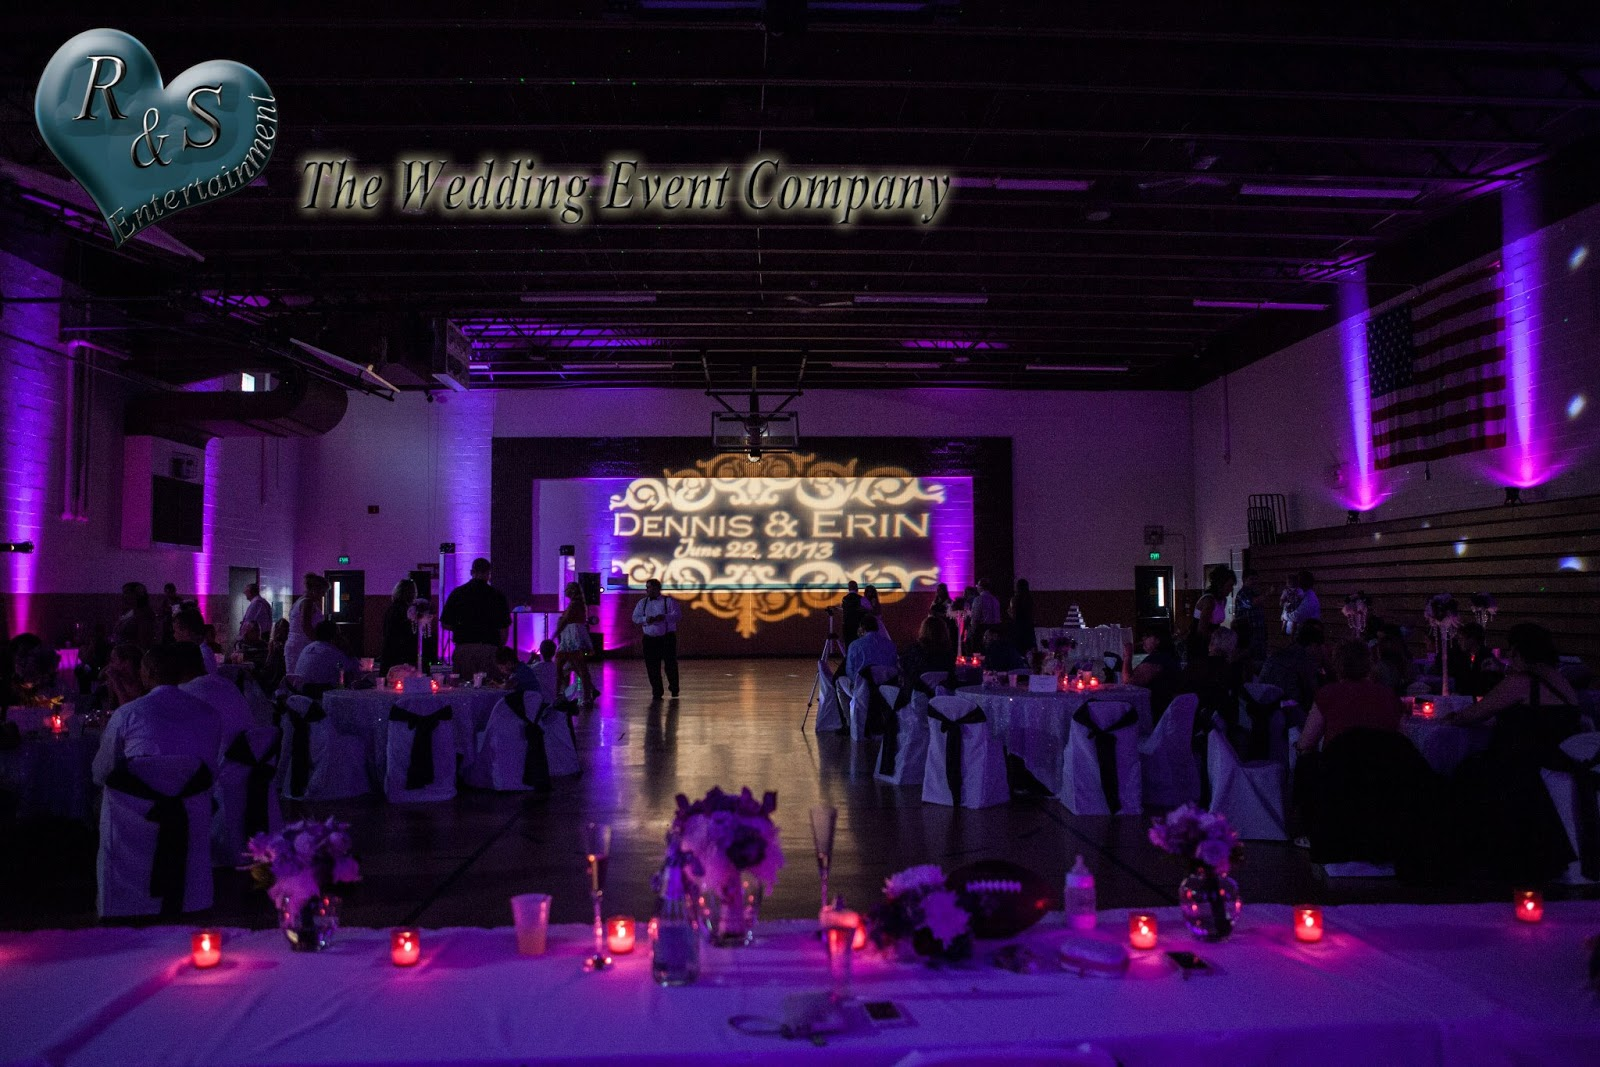 R S Entertainment The Wedding Event